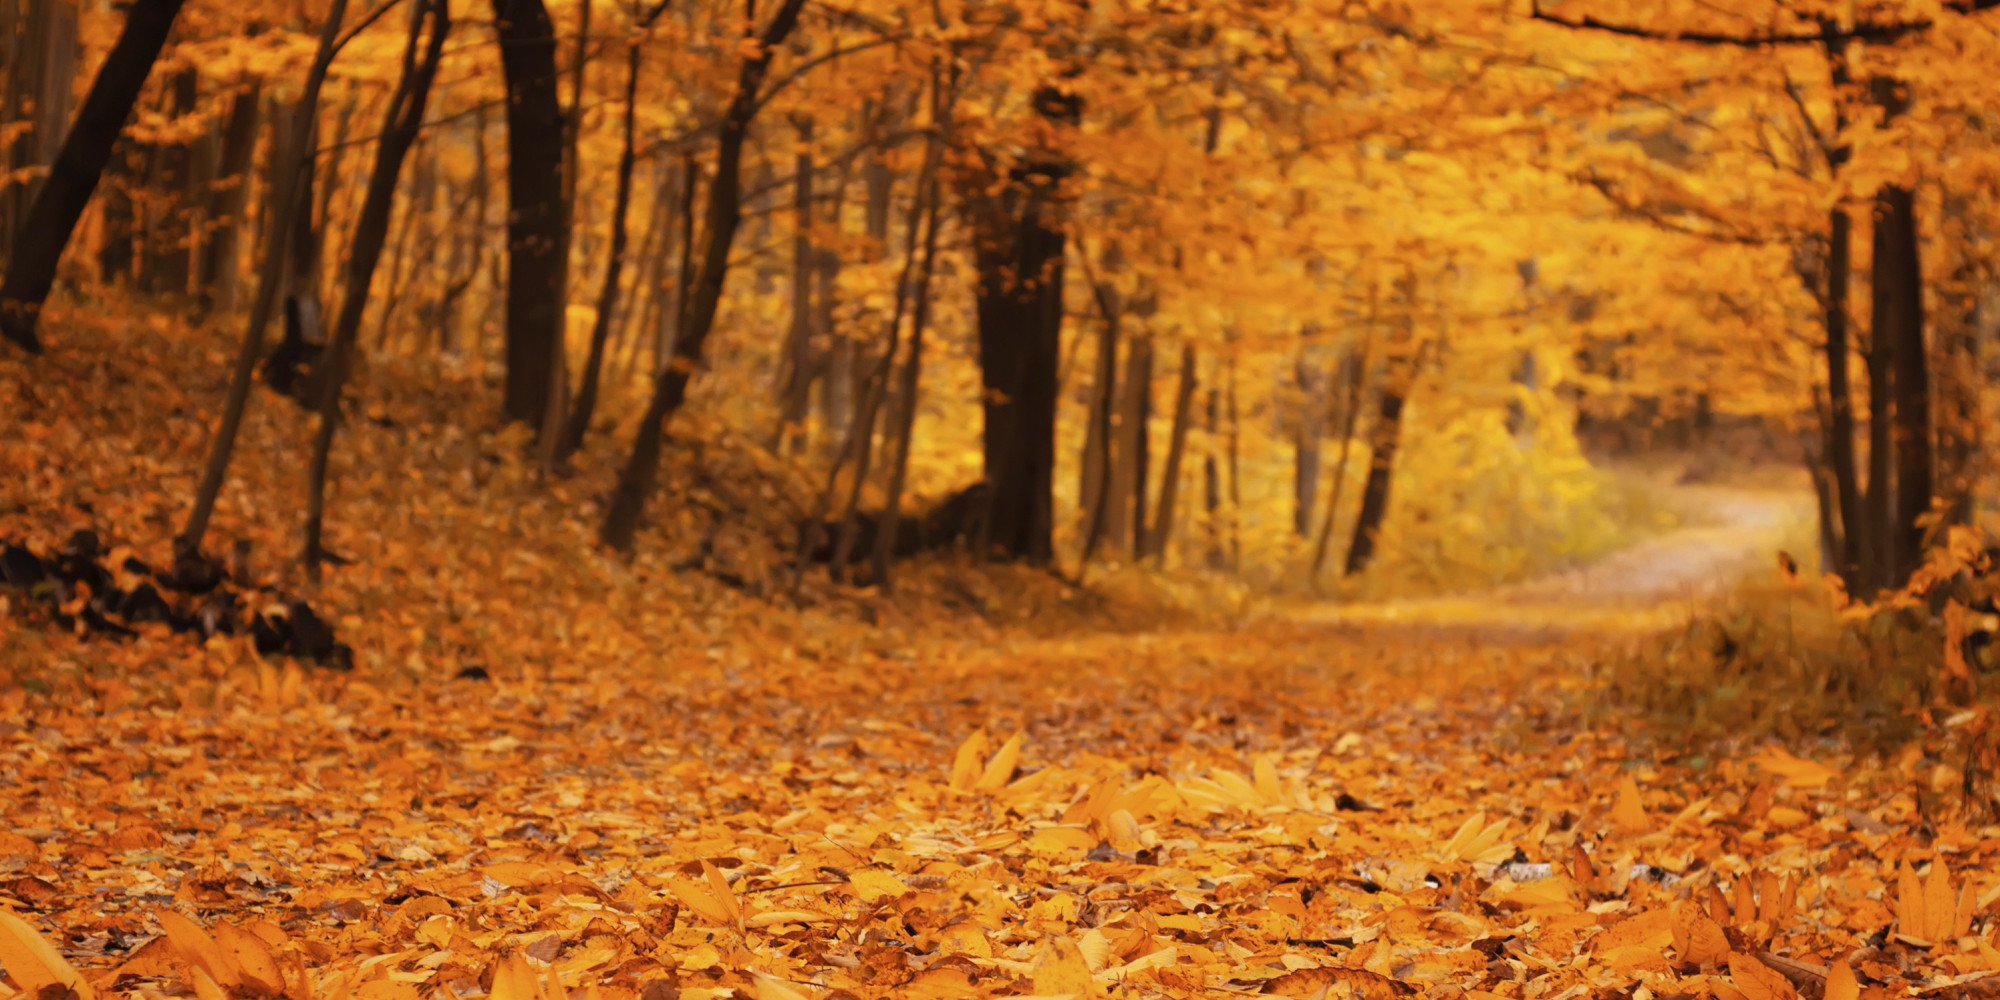 Autumn leaves What Would Make You Truly Happy?